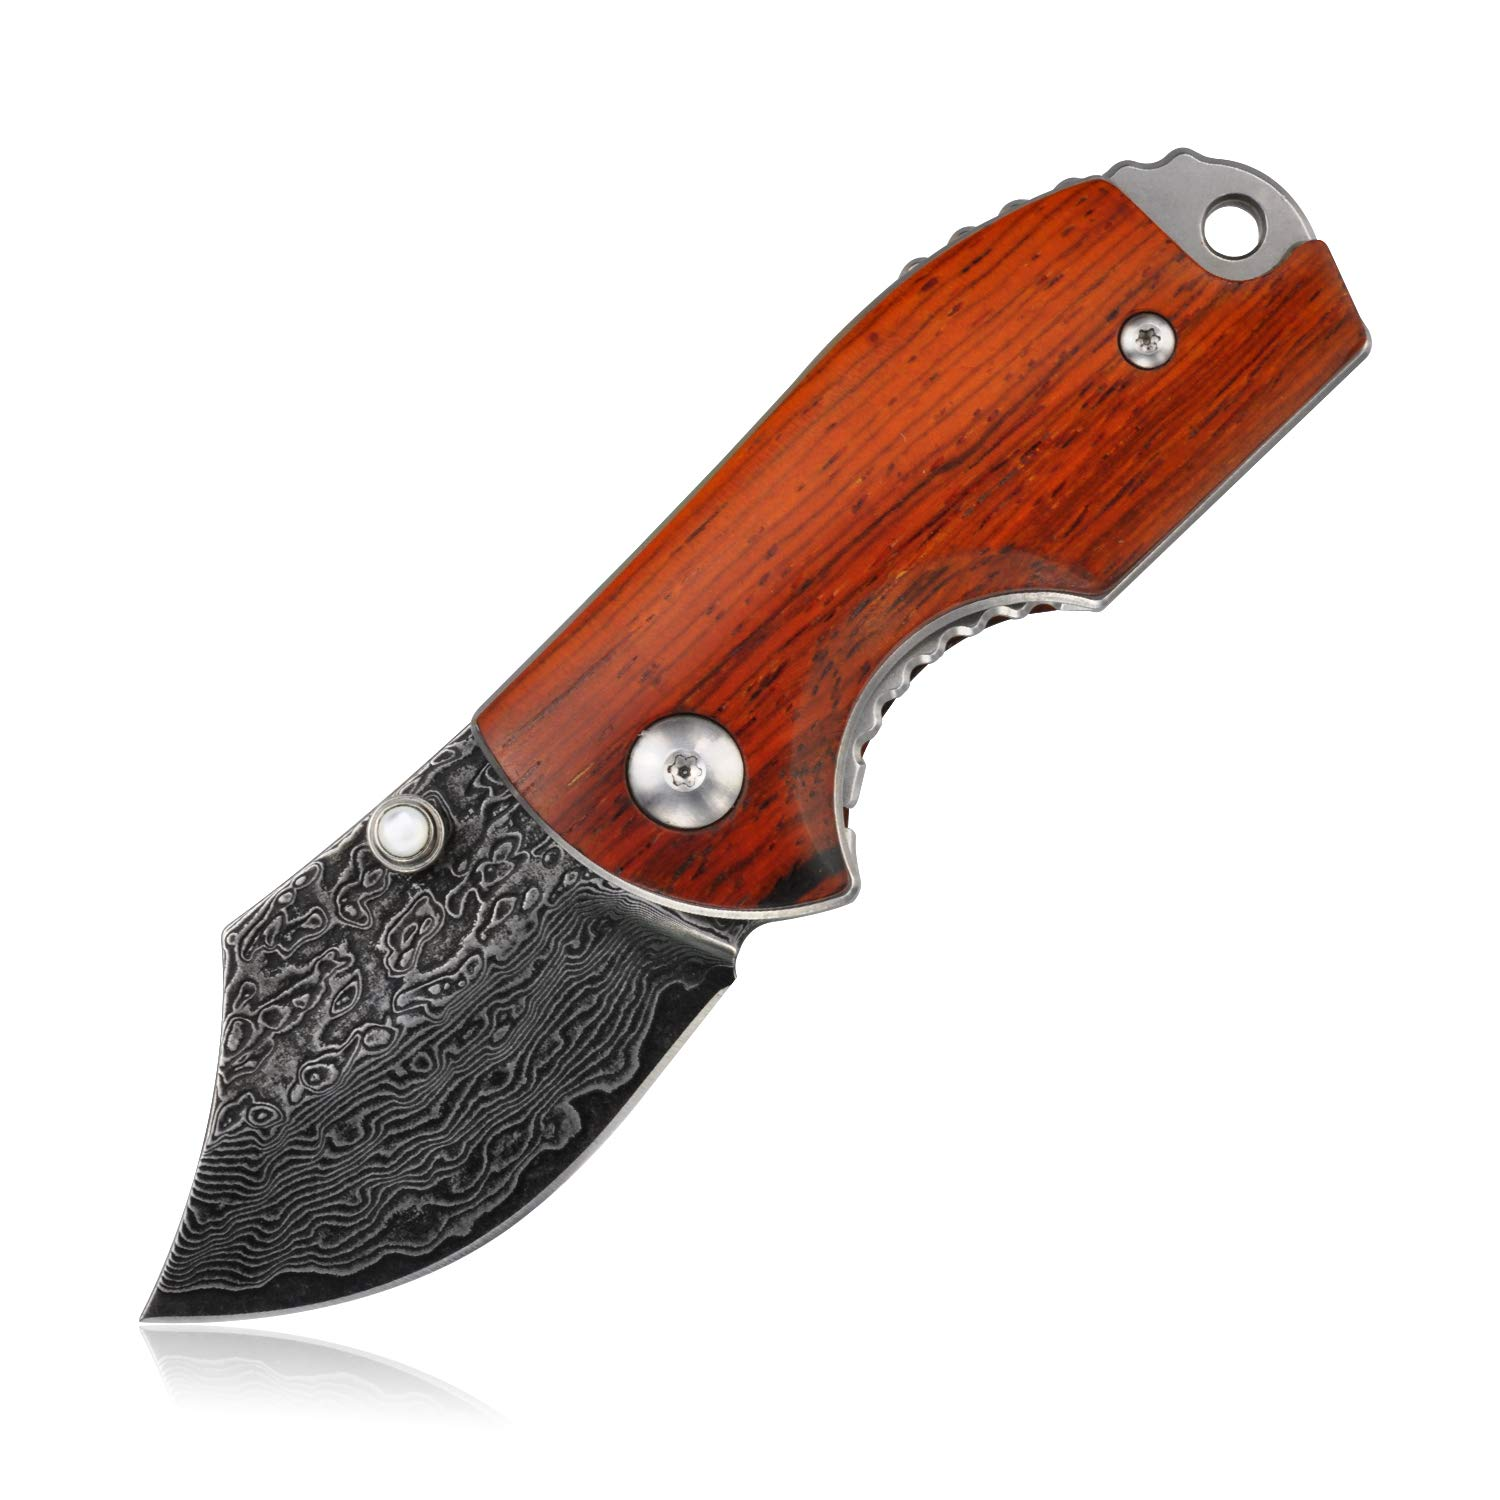 KUBEY Folding Knife, Small Pocket Knife with Wooden Handle, EDC Compact Knife with Razor Sharp Blade and Safety Liner Lock for Hunting Camping Hiking Tool (DM143-1)